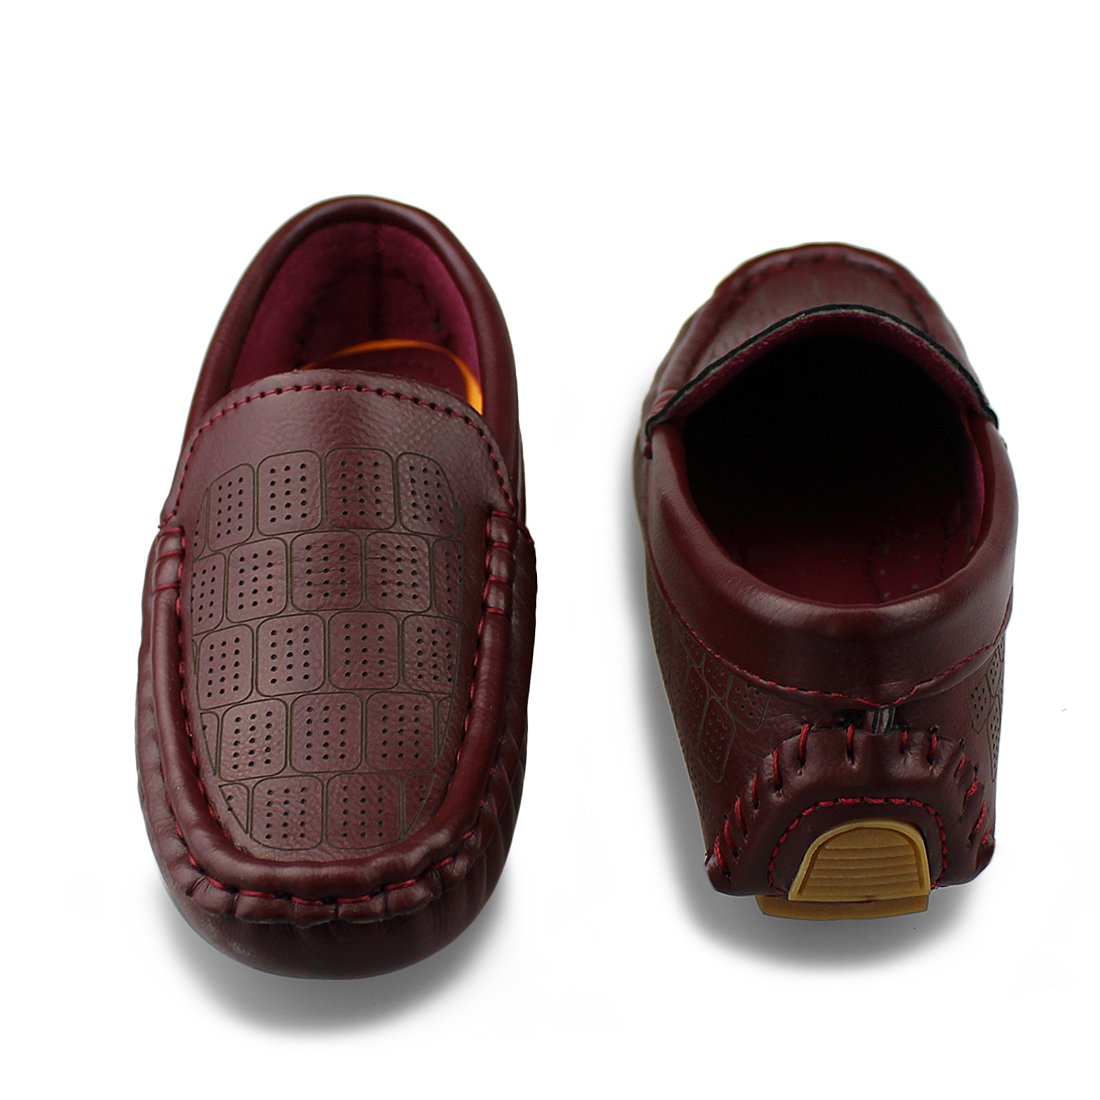 Hawkwell Kids Loafer Moccasin Oxford Driver Shoes Toddler//Little Kid//Big Kid